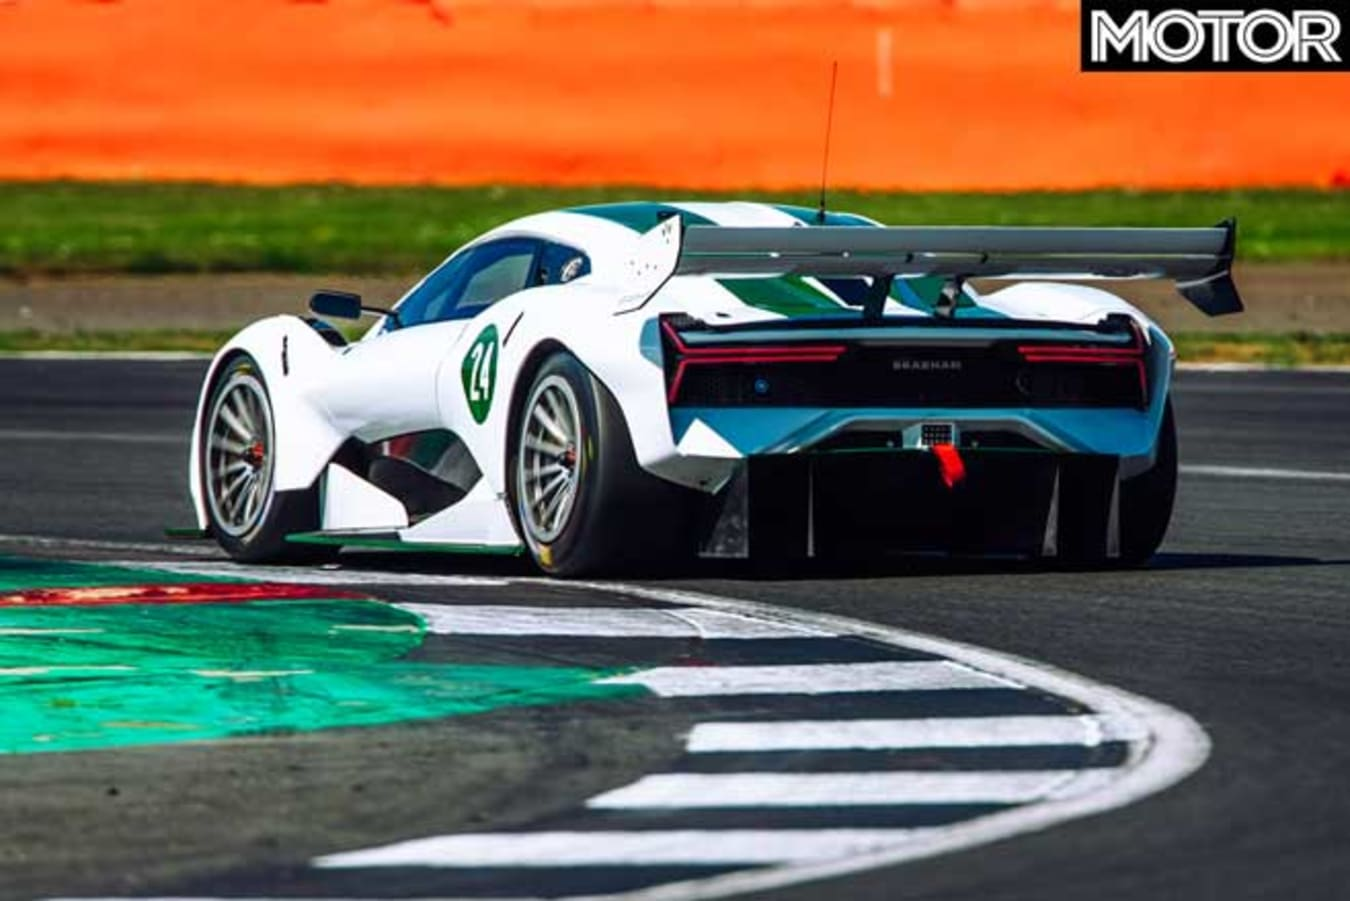 2019 Brabham BT62 ride and handling review